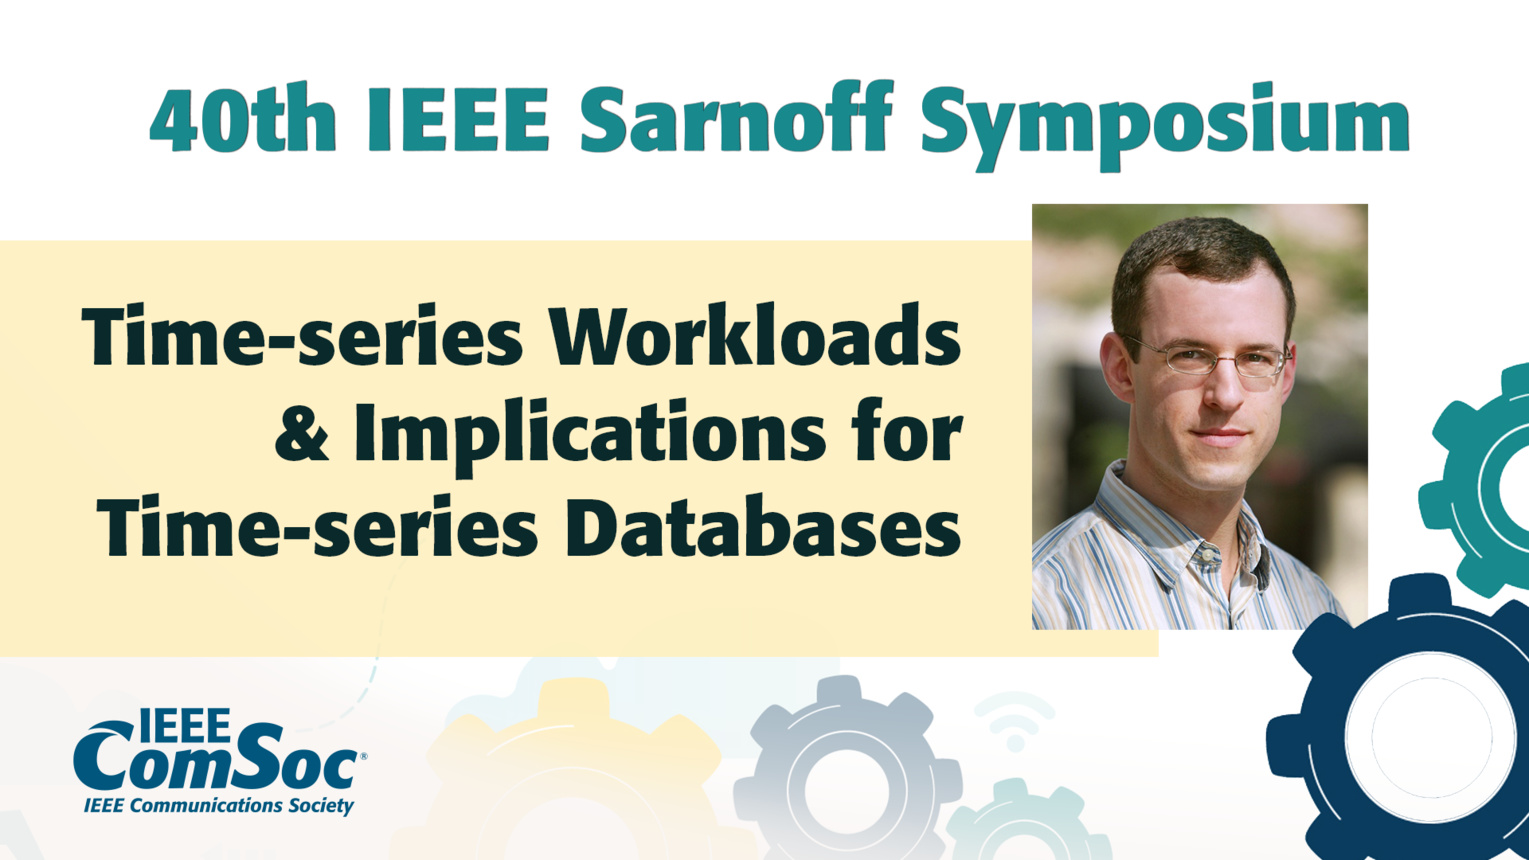 Time-series Workloads and Implications for Time-series Databases - Michael Freedman - IEEE Sarnoff Symposium, 2019